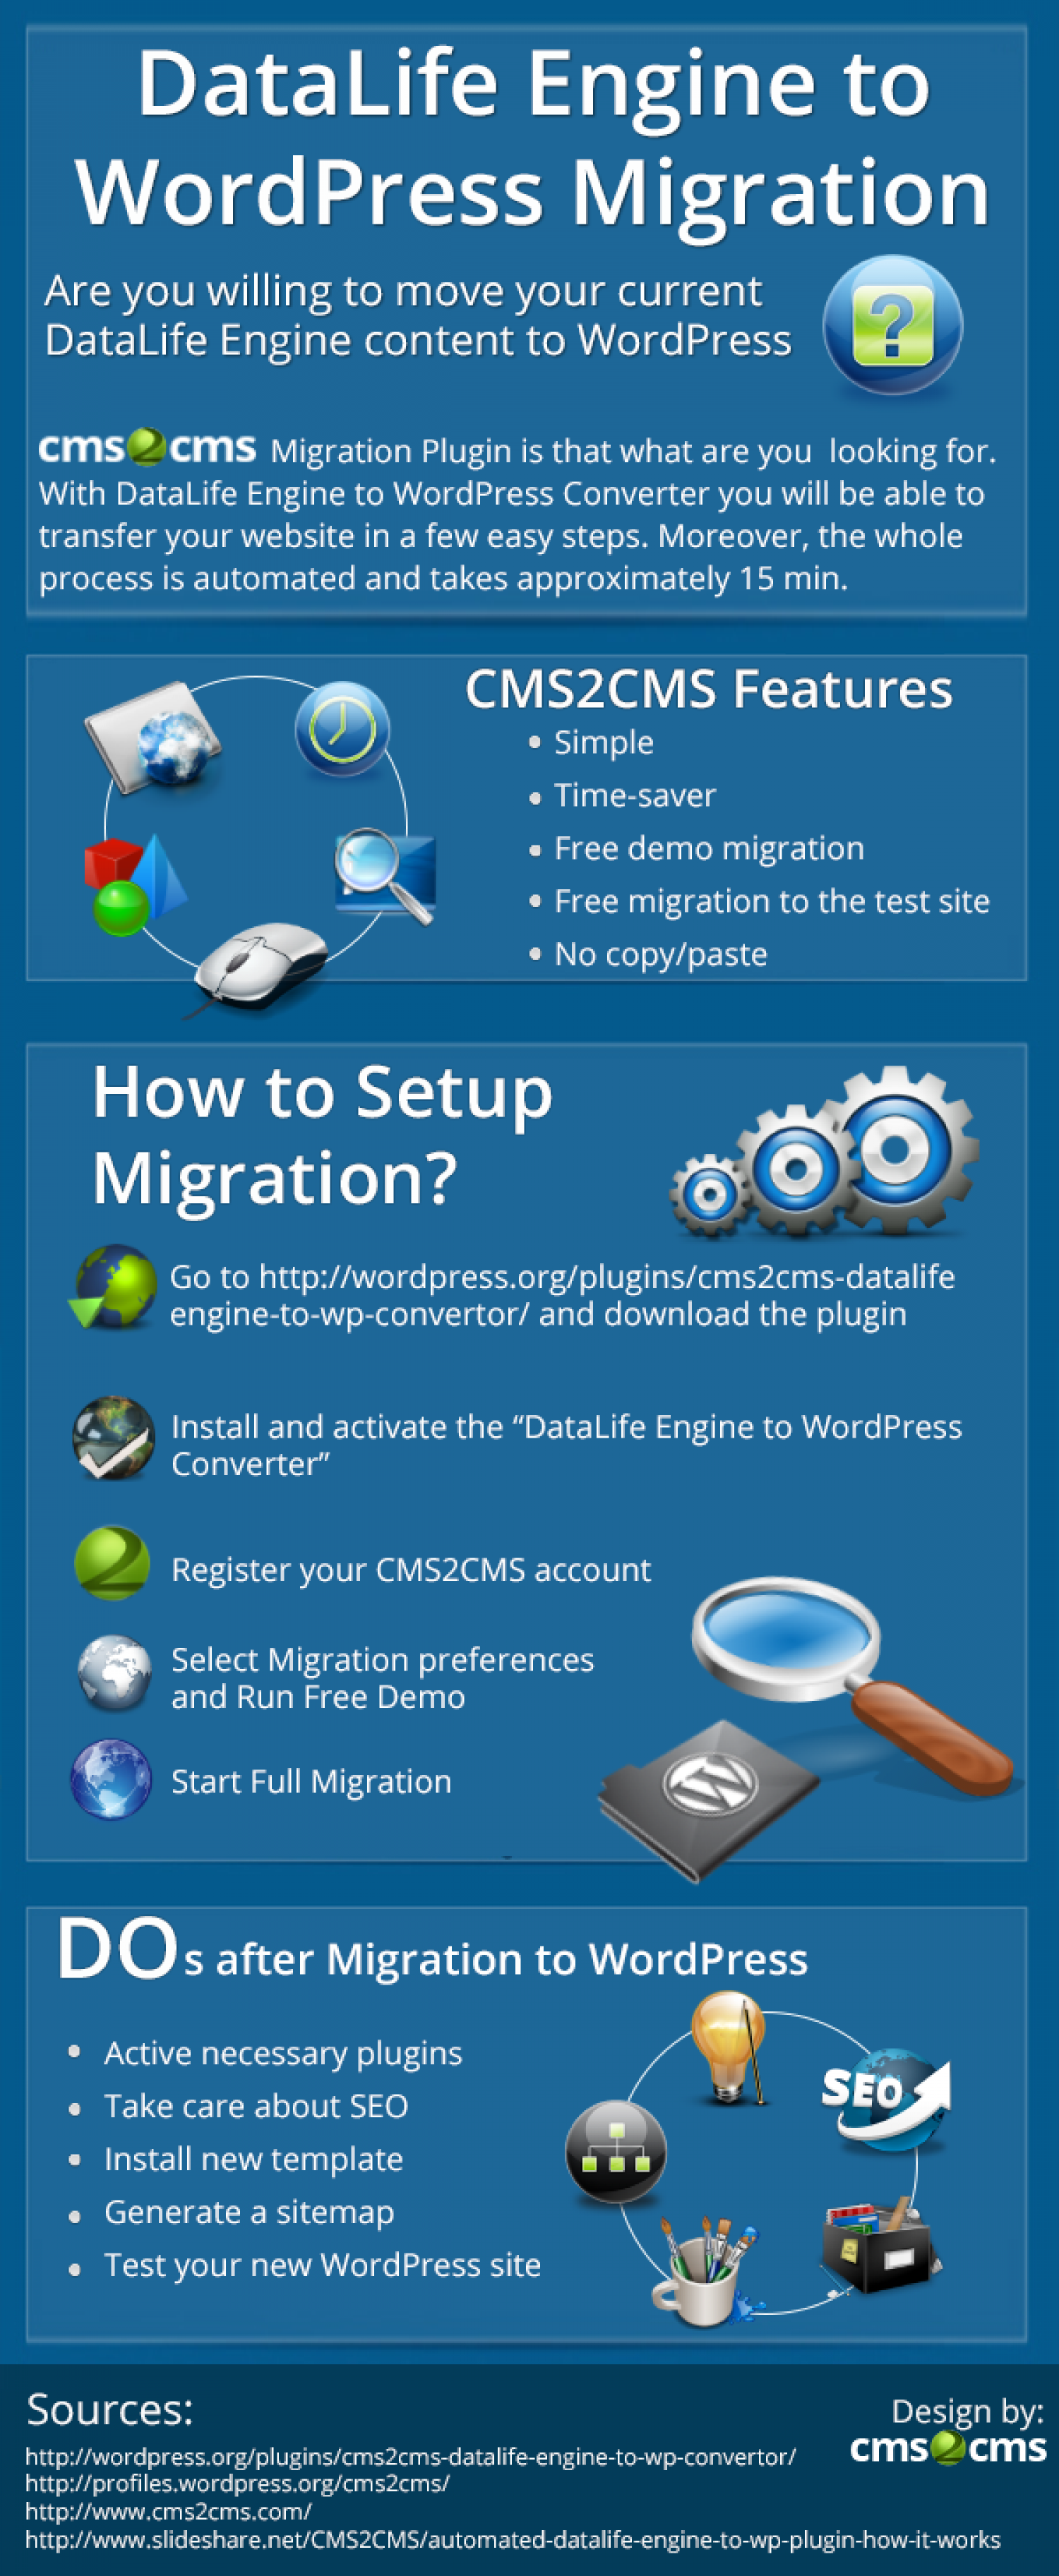 DataLife Engine to WordPress Migration Plugin Infographic